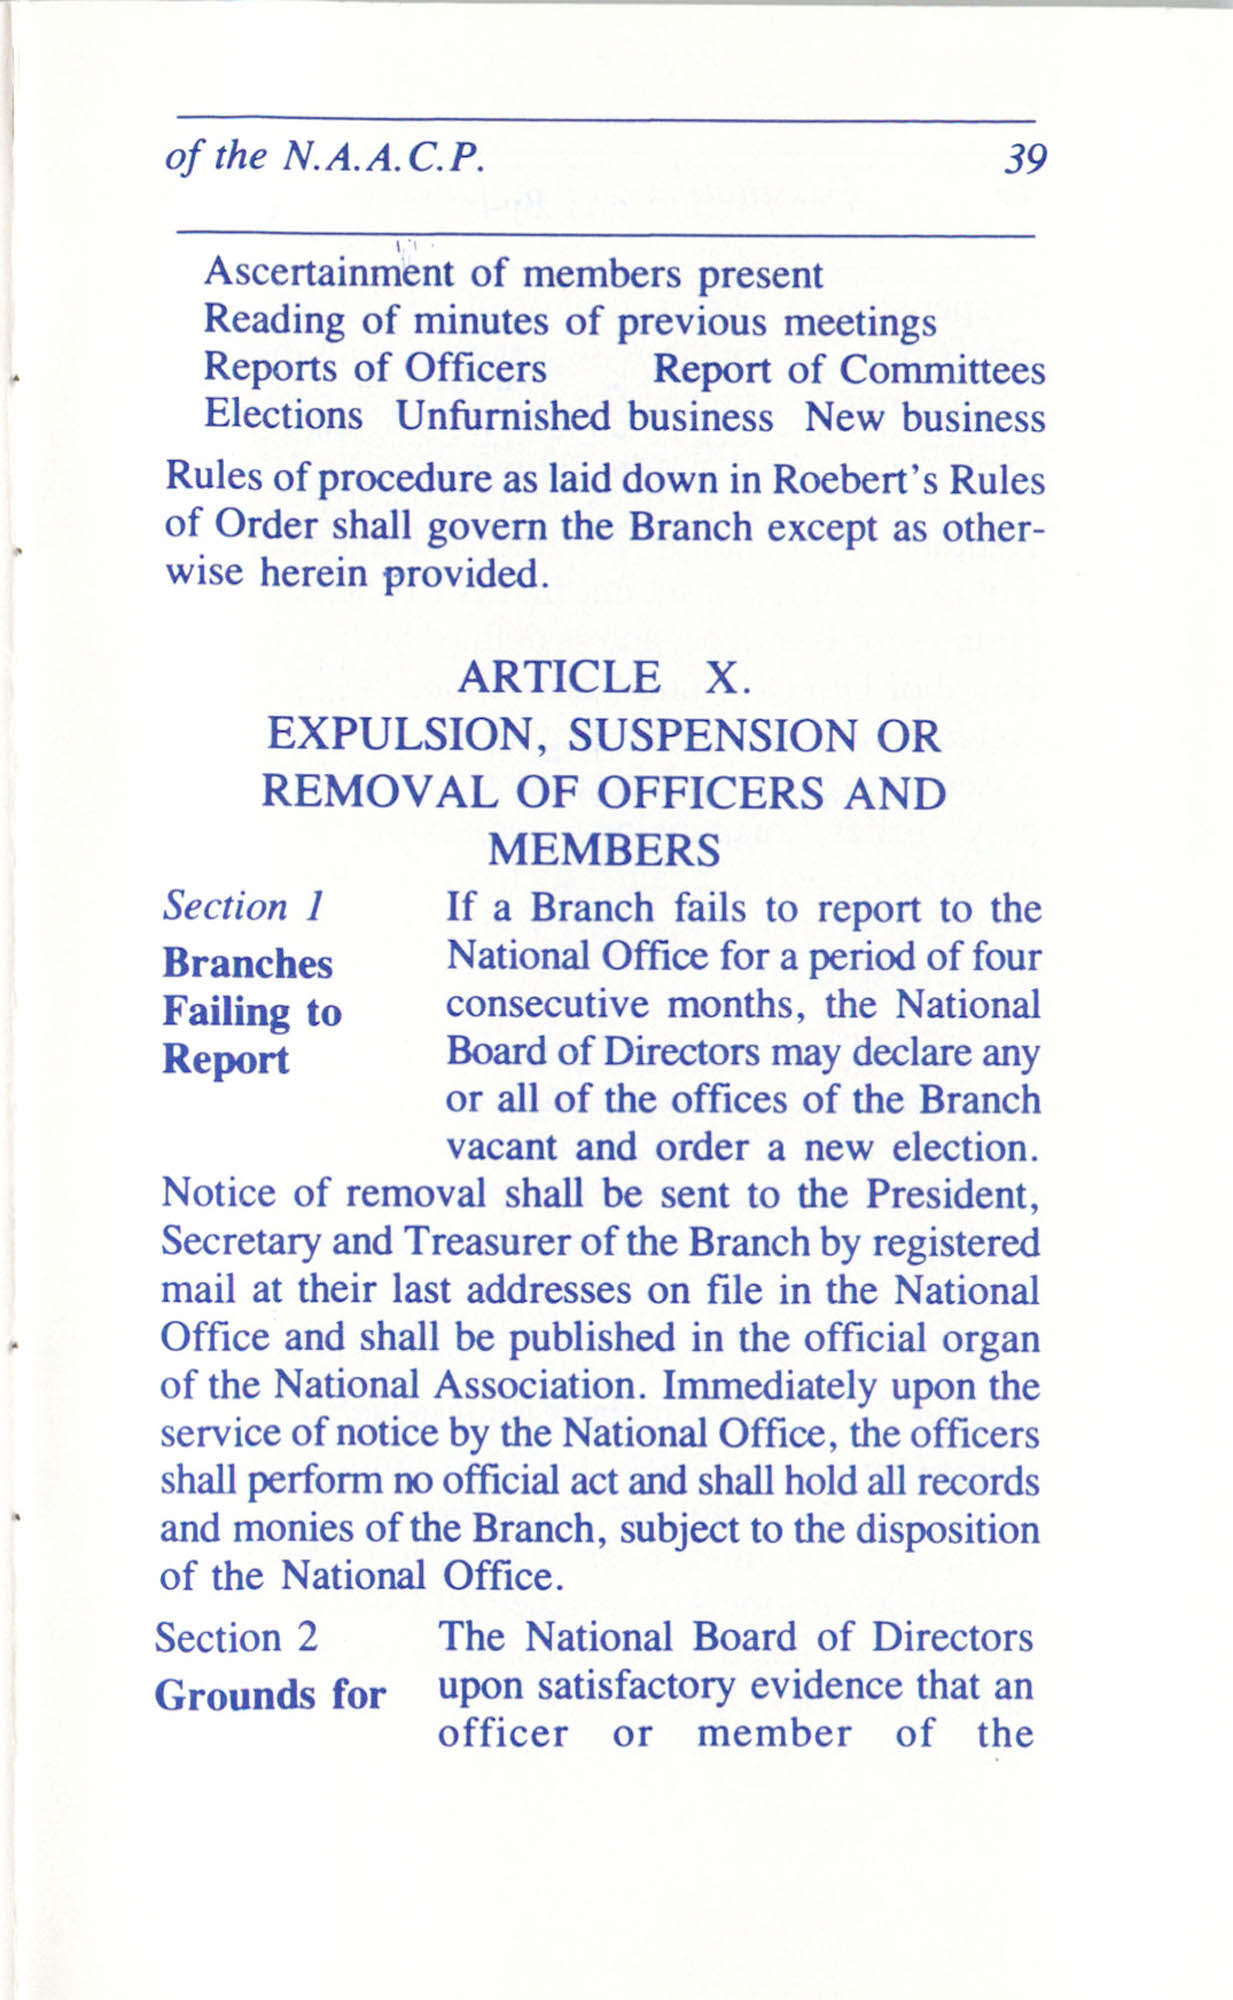 Constitution and By-Laws for Branches of the NAACP, June 1993, Page 39